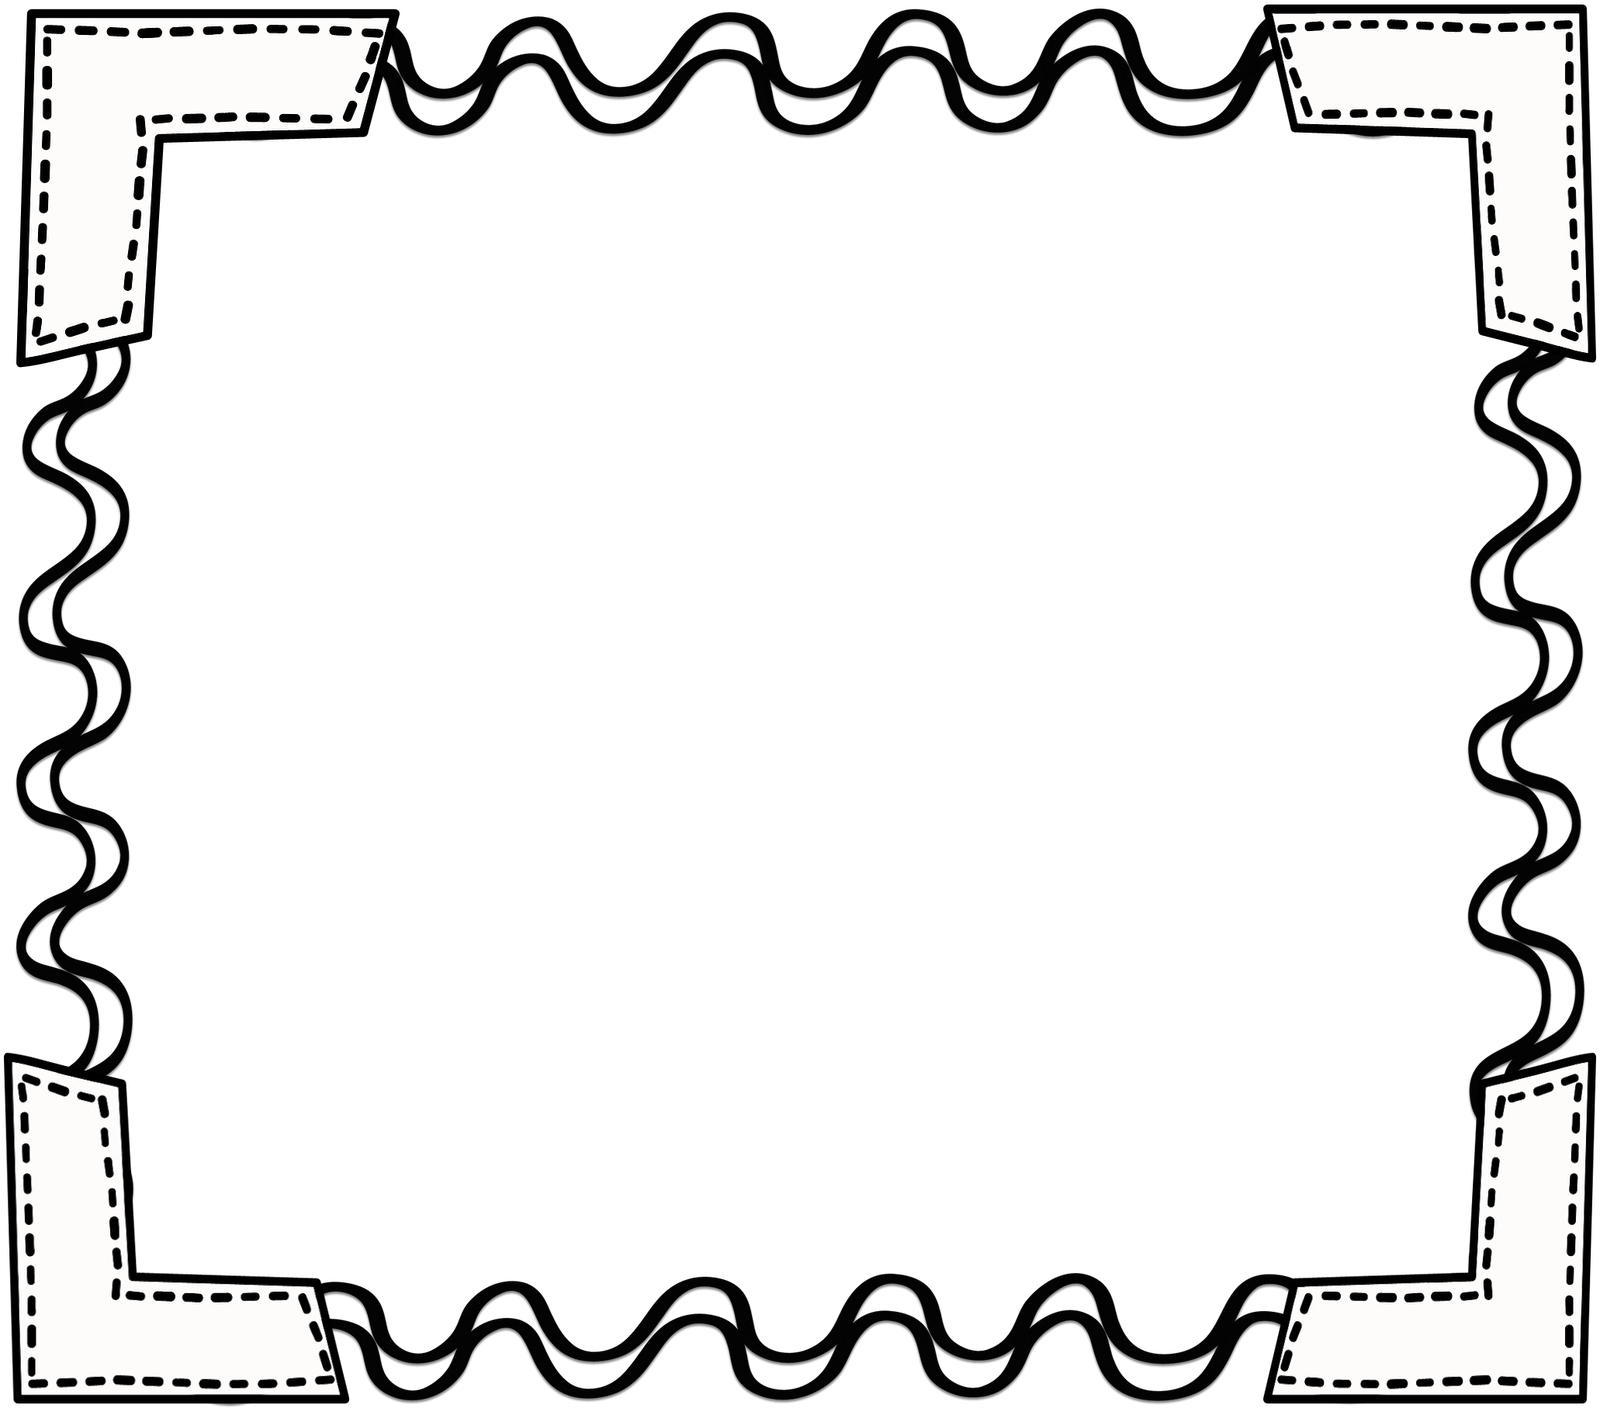 Black and white clipart border clip freeuse Pin by Carla Broussard on School | School border, Borders, frames ... clip freeuse